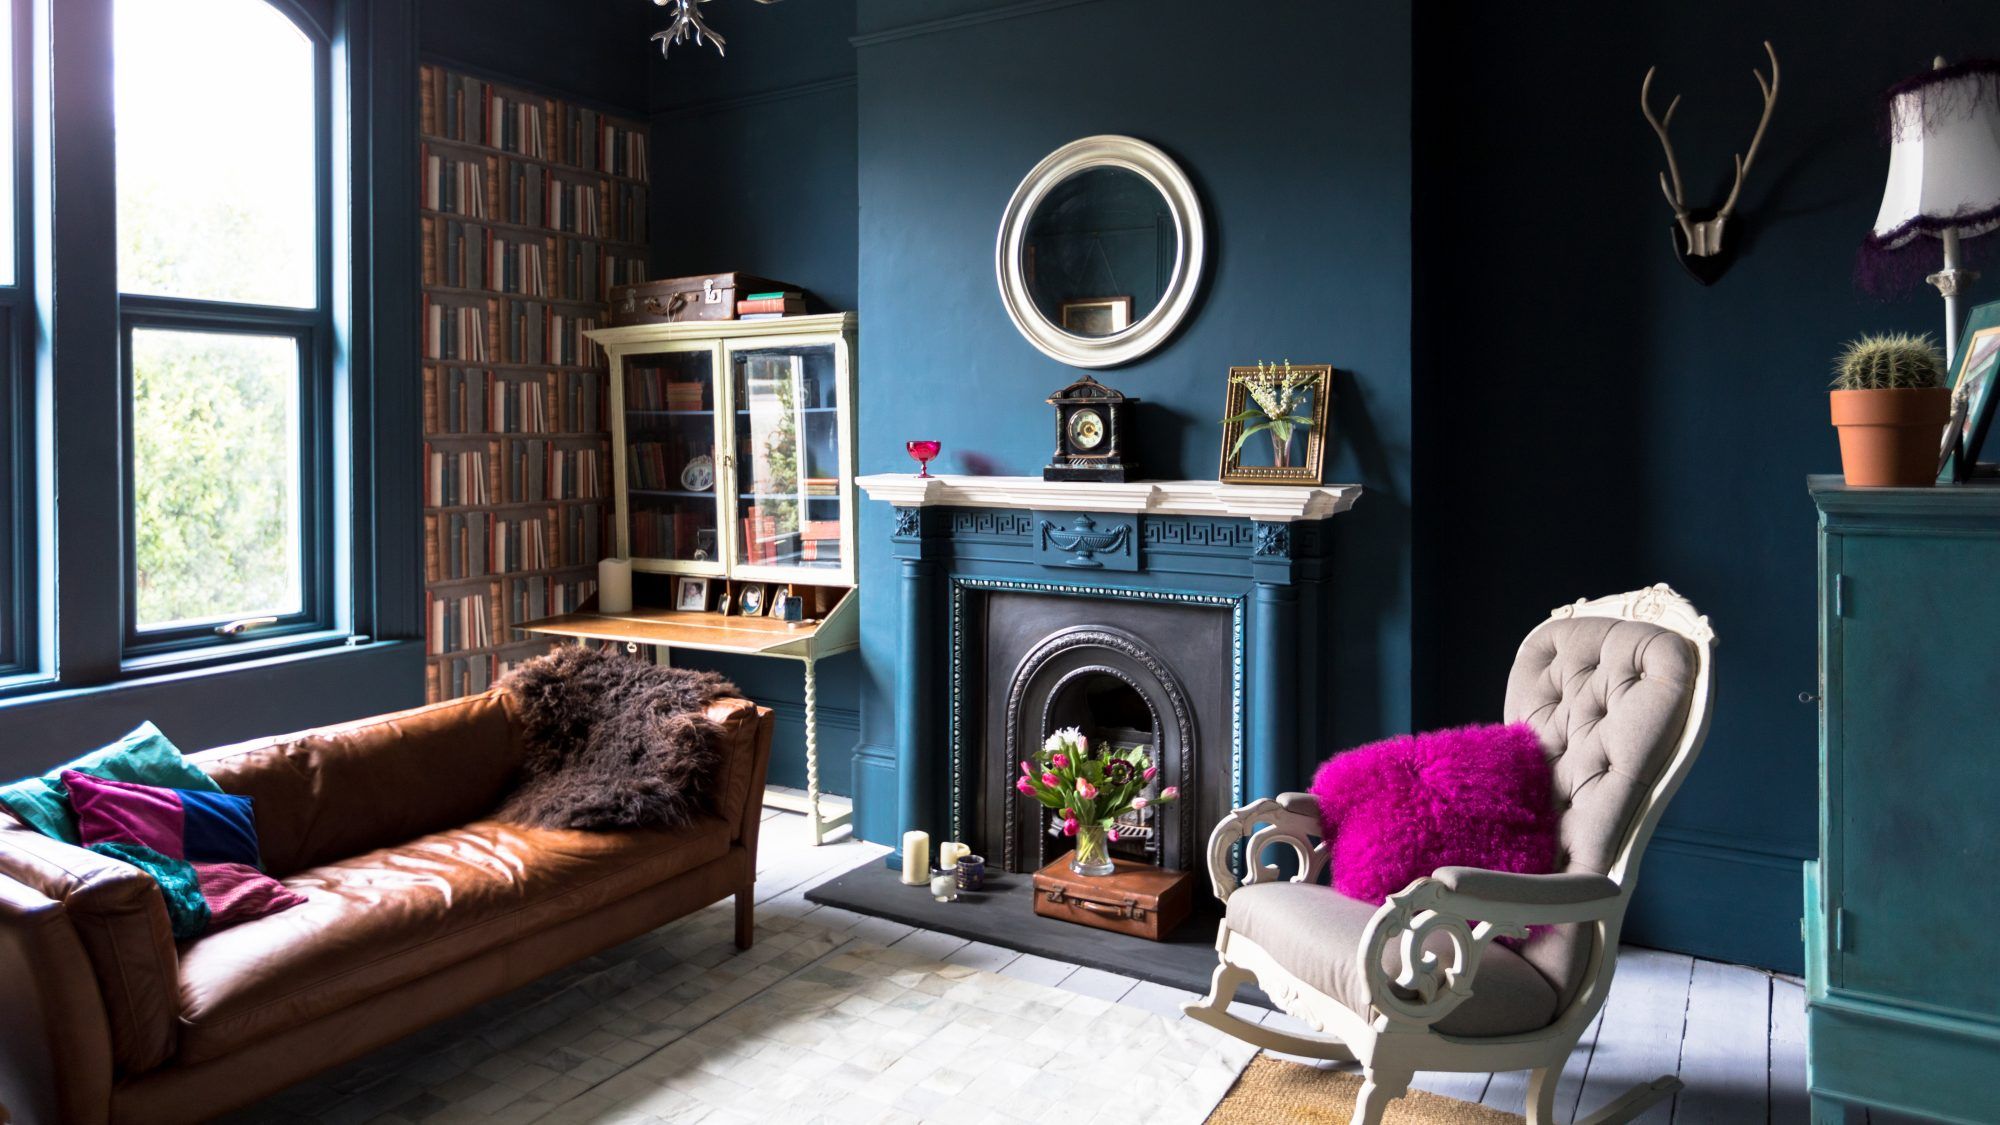 Find Your Personal Home Decor Style, living room with blue paint